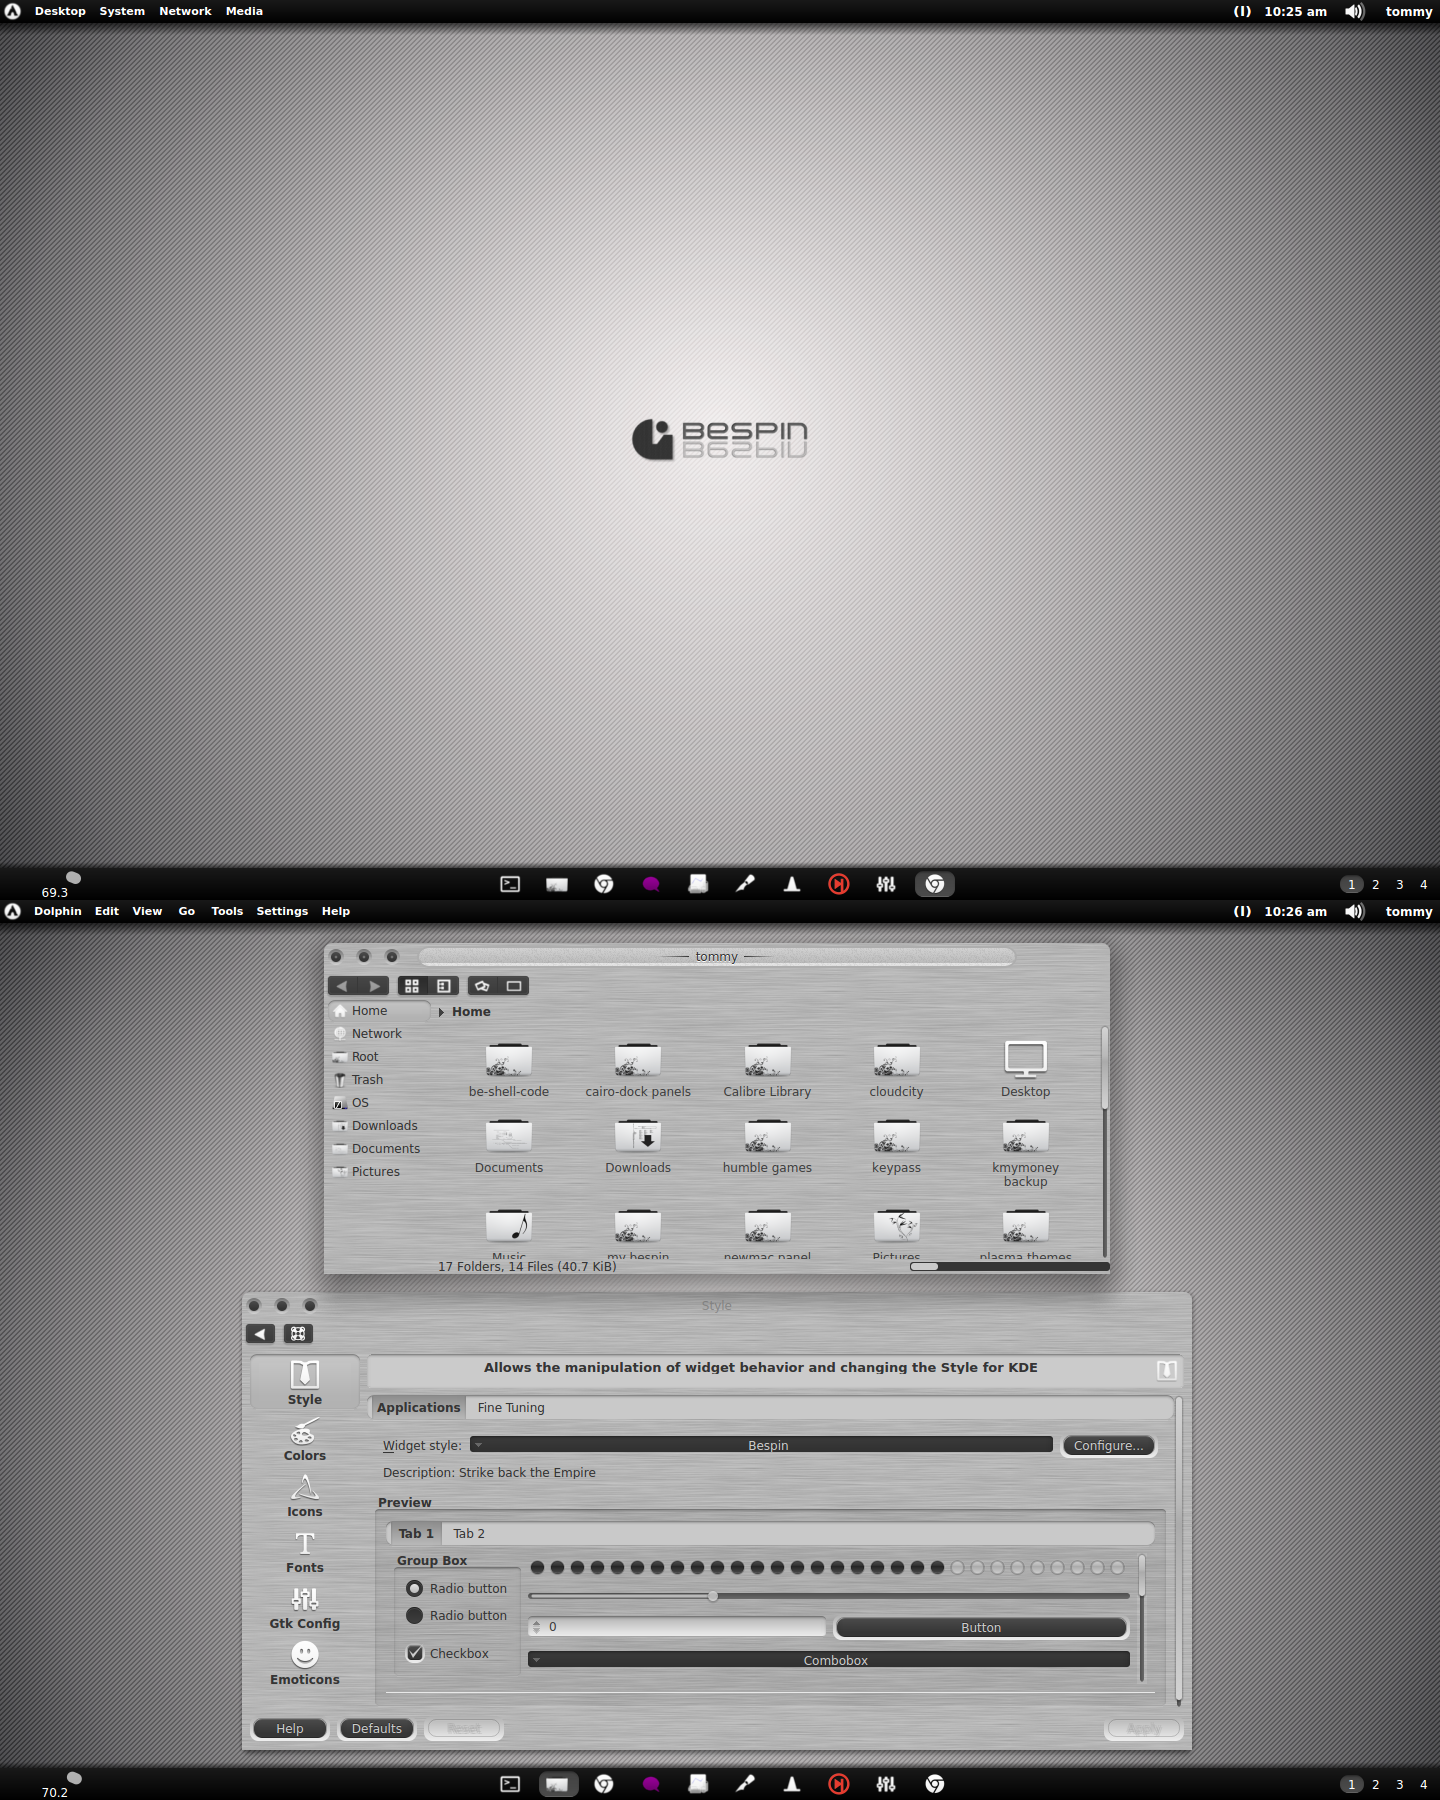 Bespin Metalized Grey with Dark Buttons Theme by CraazyT